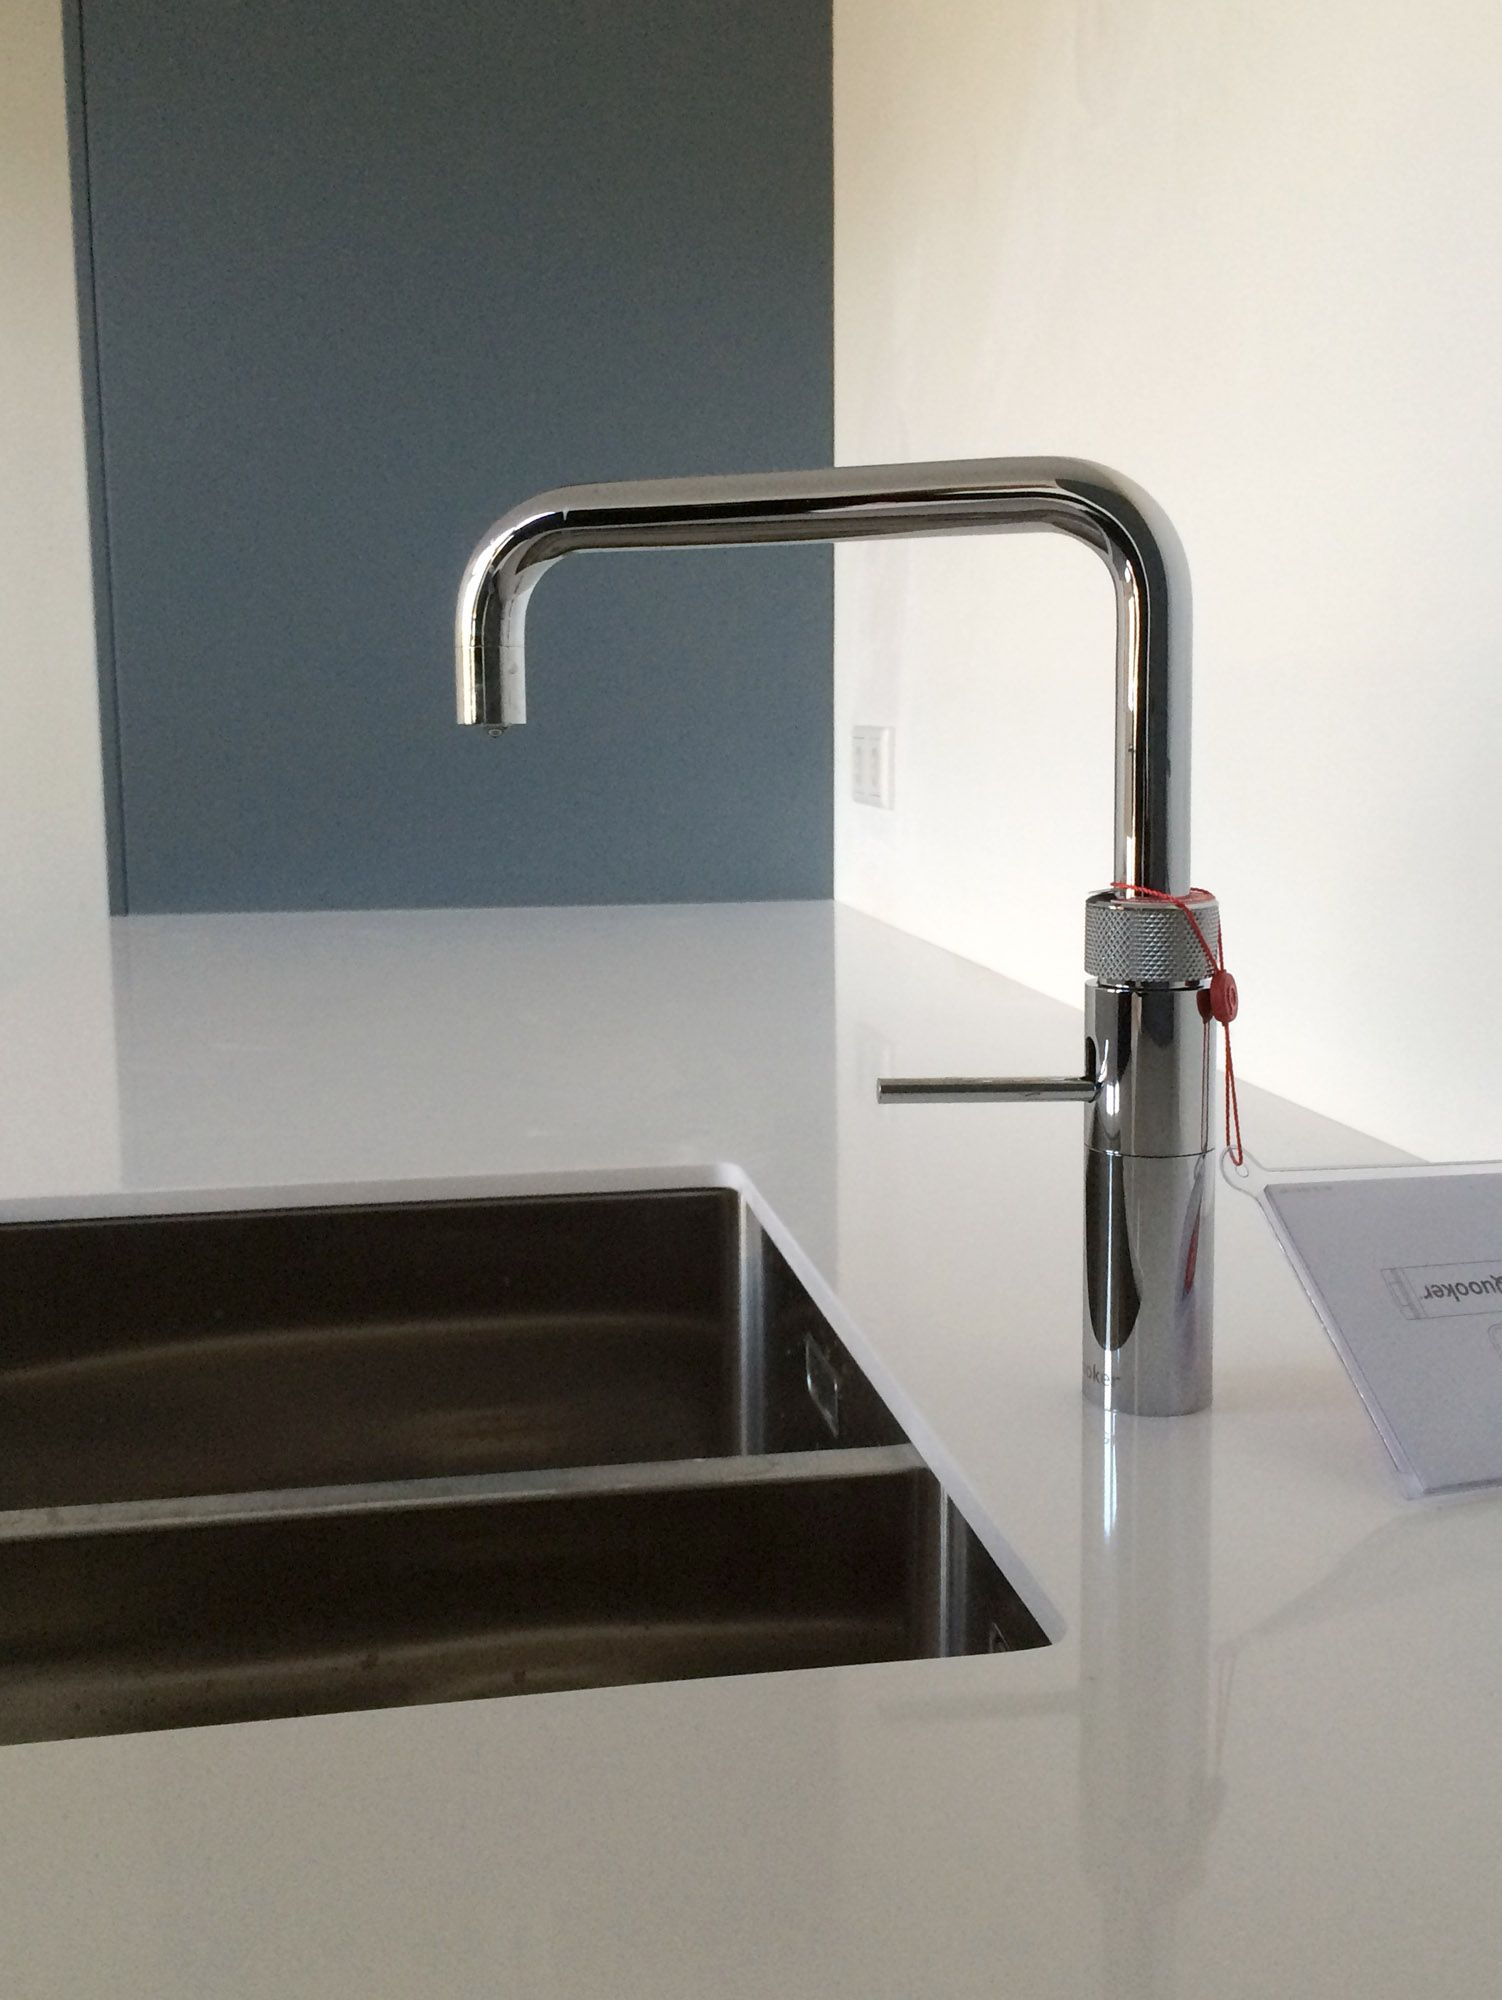 Pin by Céline Dufresne on Robineterie et sanitaires Faucet and